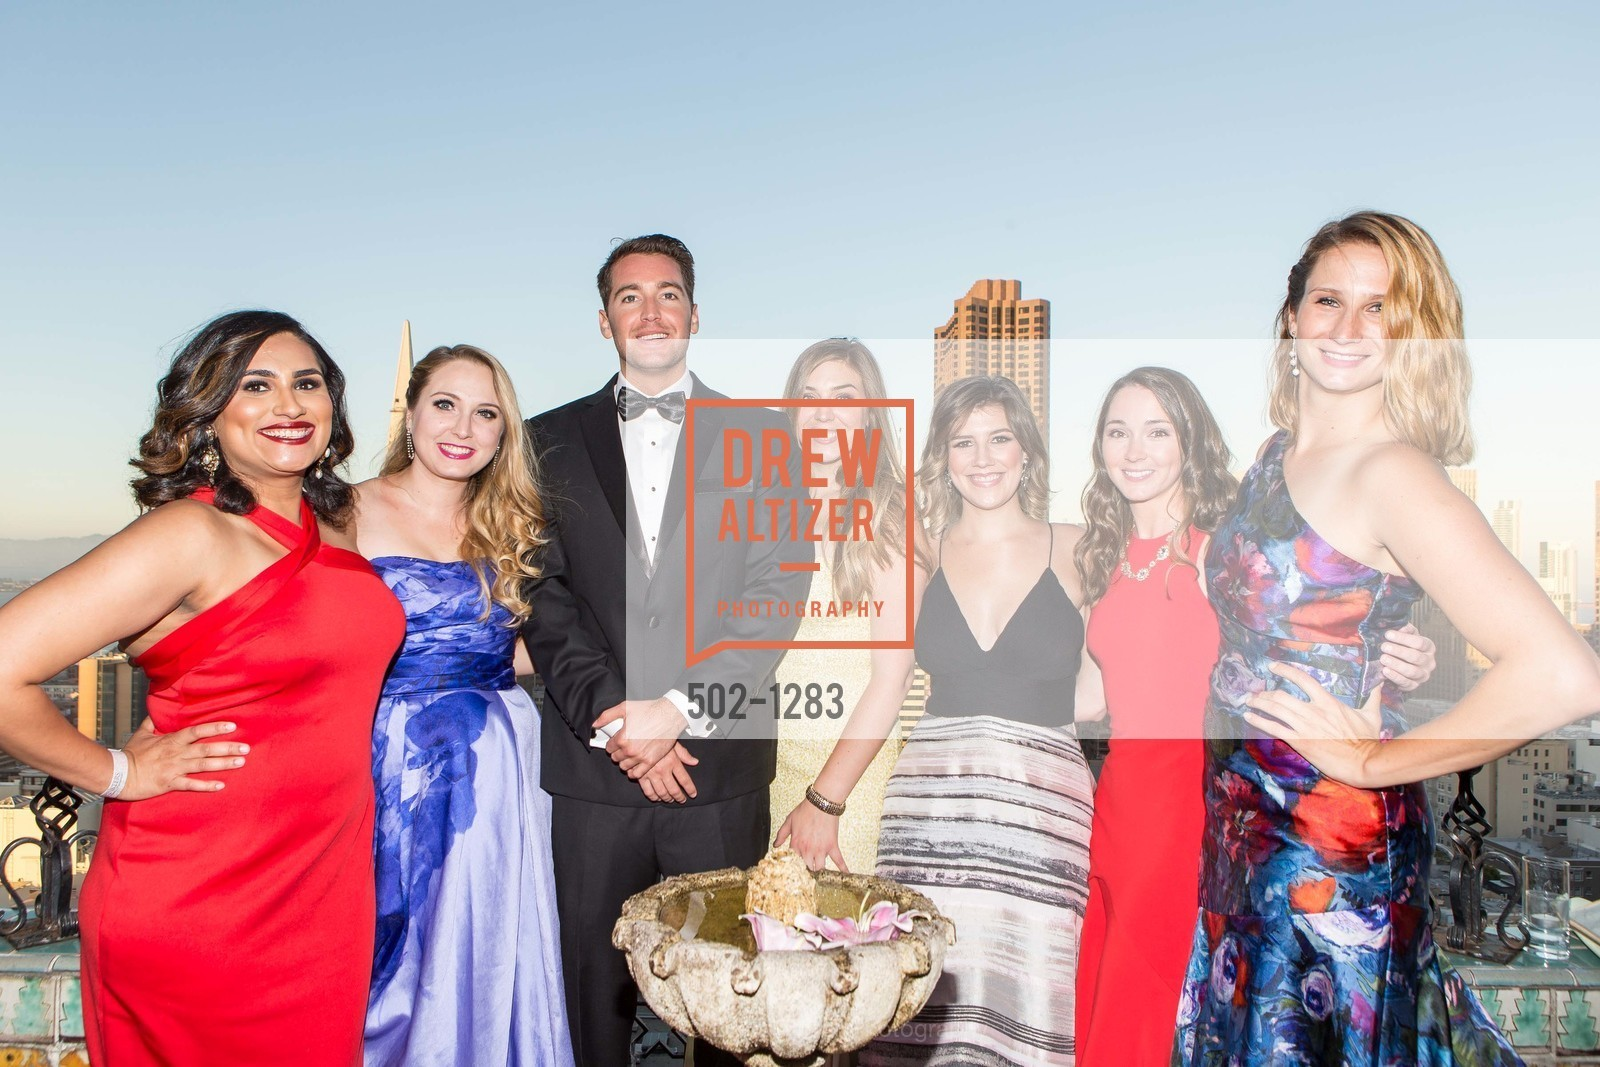 Teesta Kaur, Victoria Whitehill, Alyssa Nordstrom, Jeanette LeFevre, Danielle Schraner, Spinsters of San Francisco Annual Ball 2016, US, June 25th, 2016